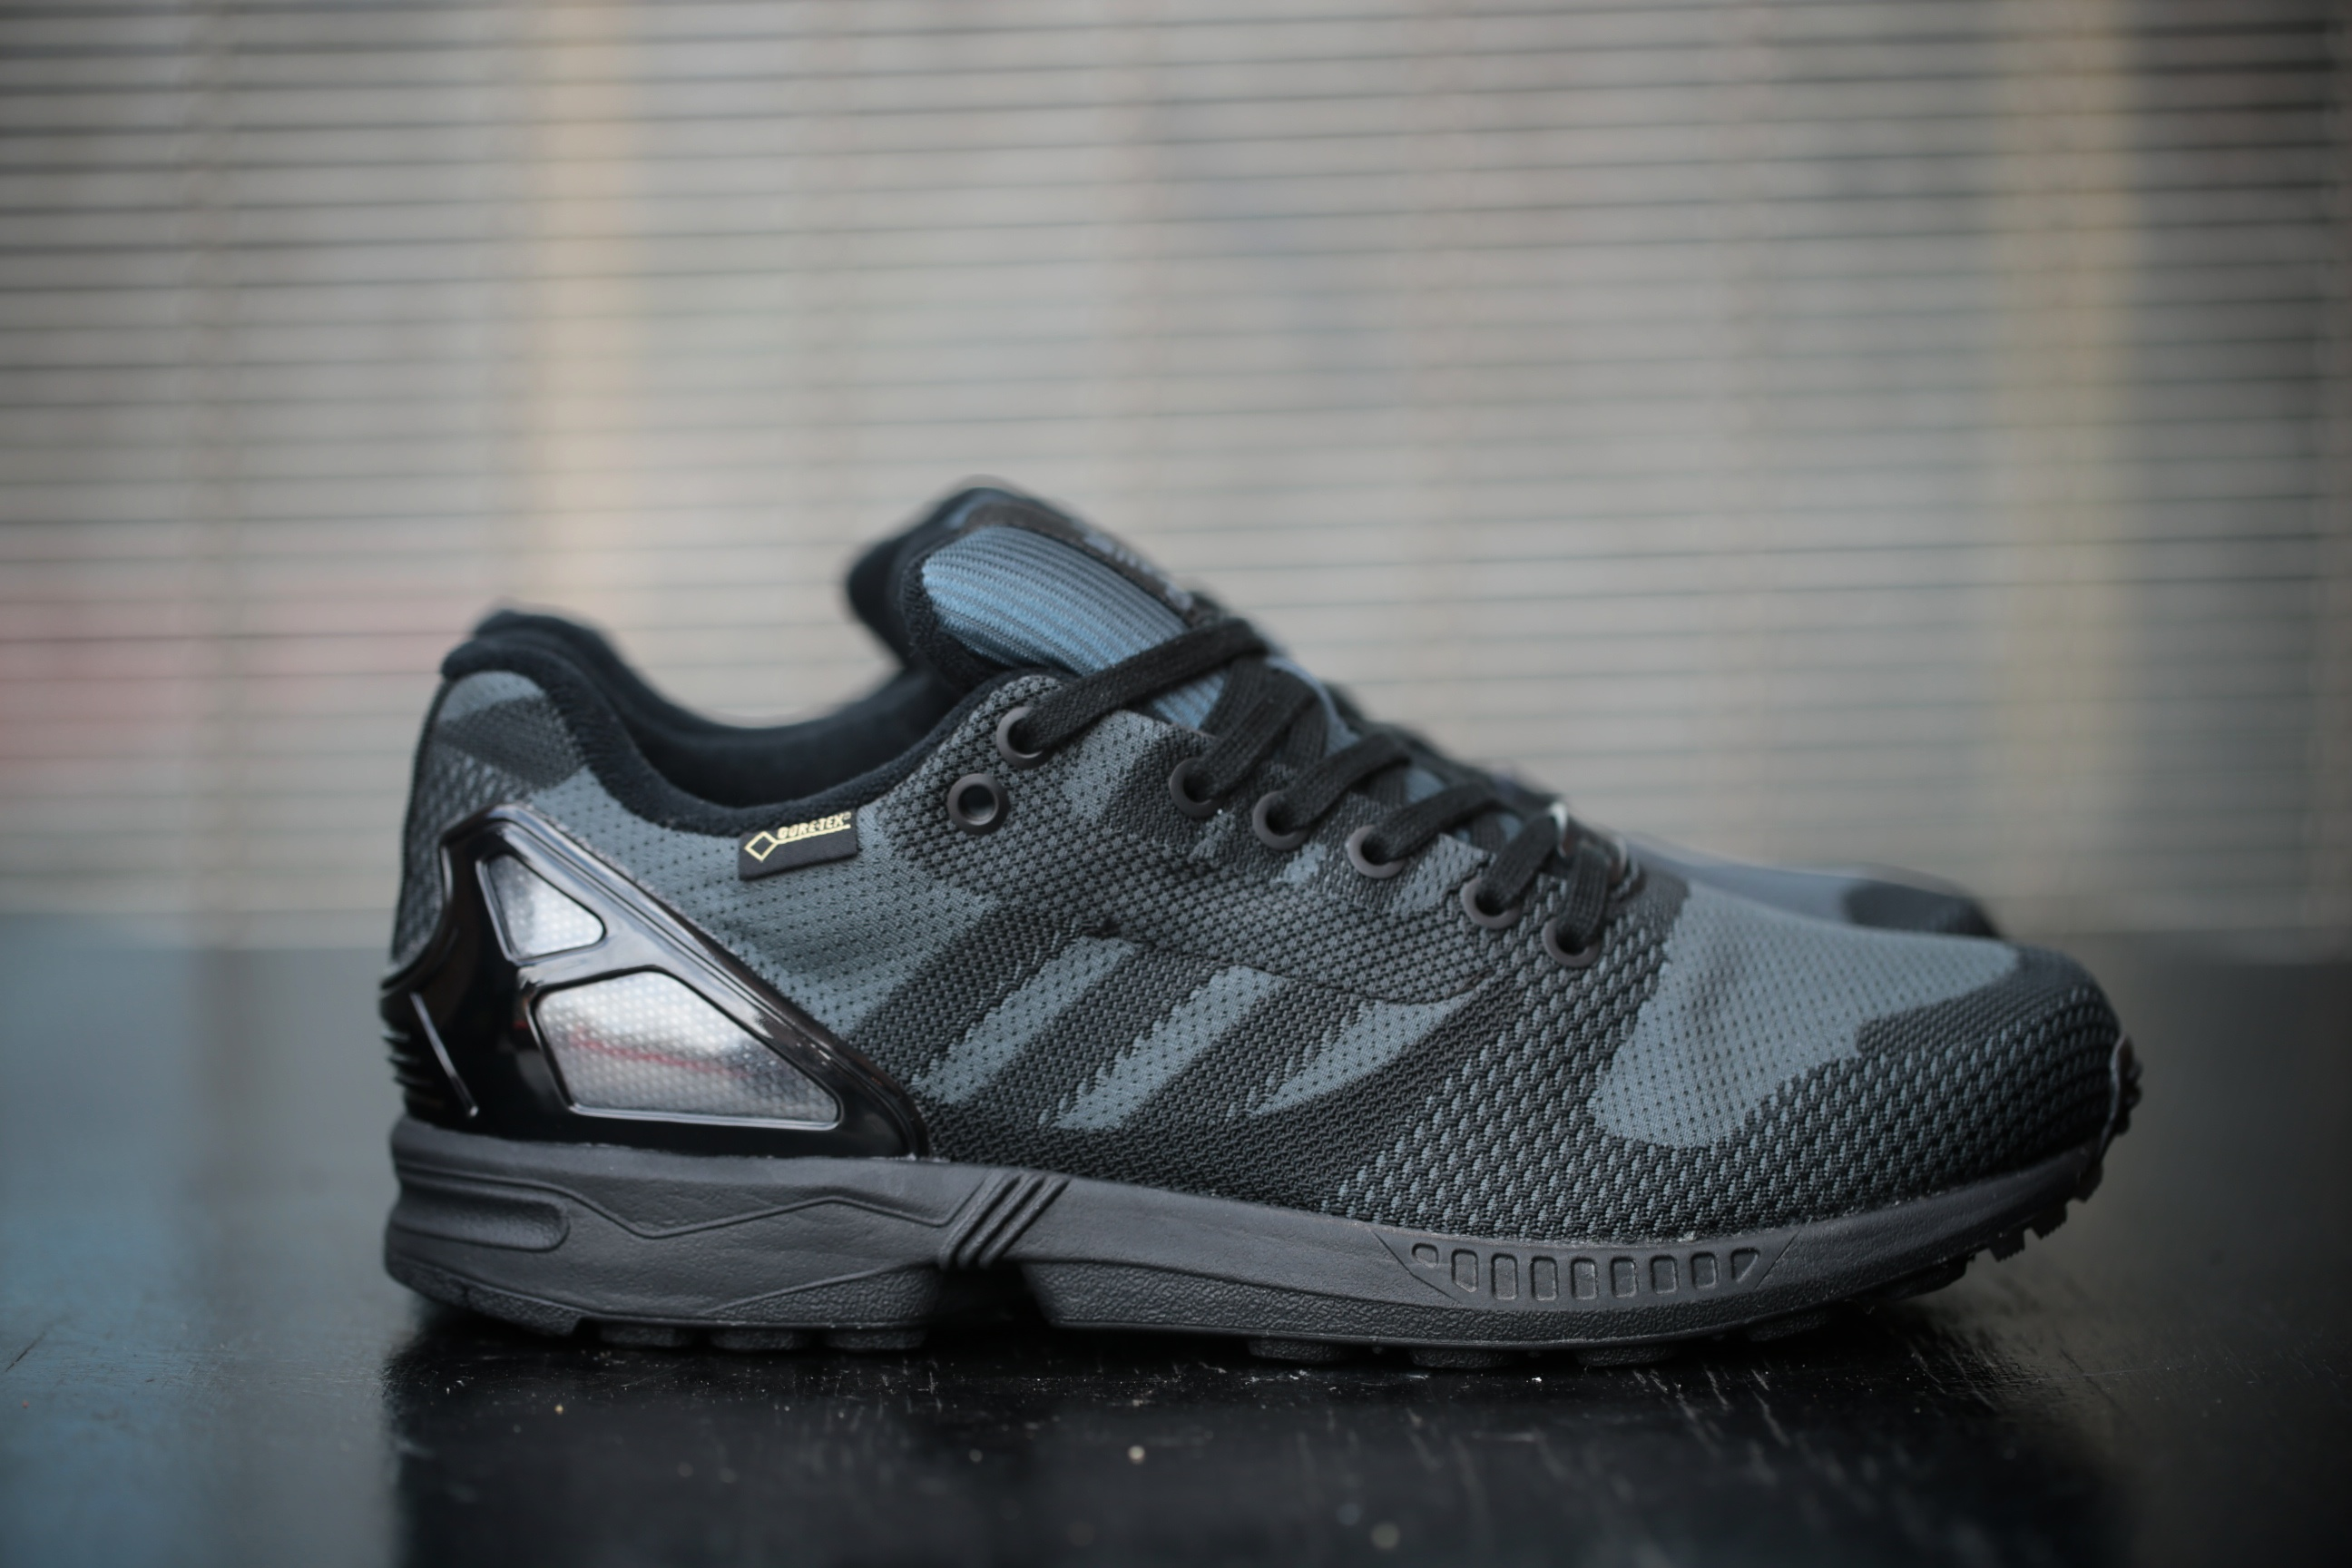 100% authentic e137d 873aa adidas Originals ZX Flux Weave OG GTX – Black   Black – STASP